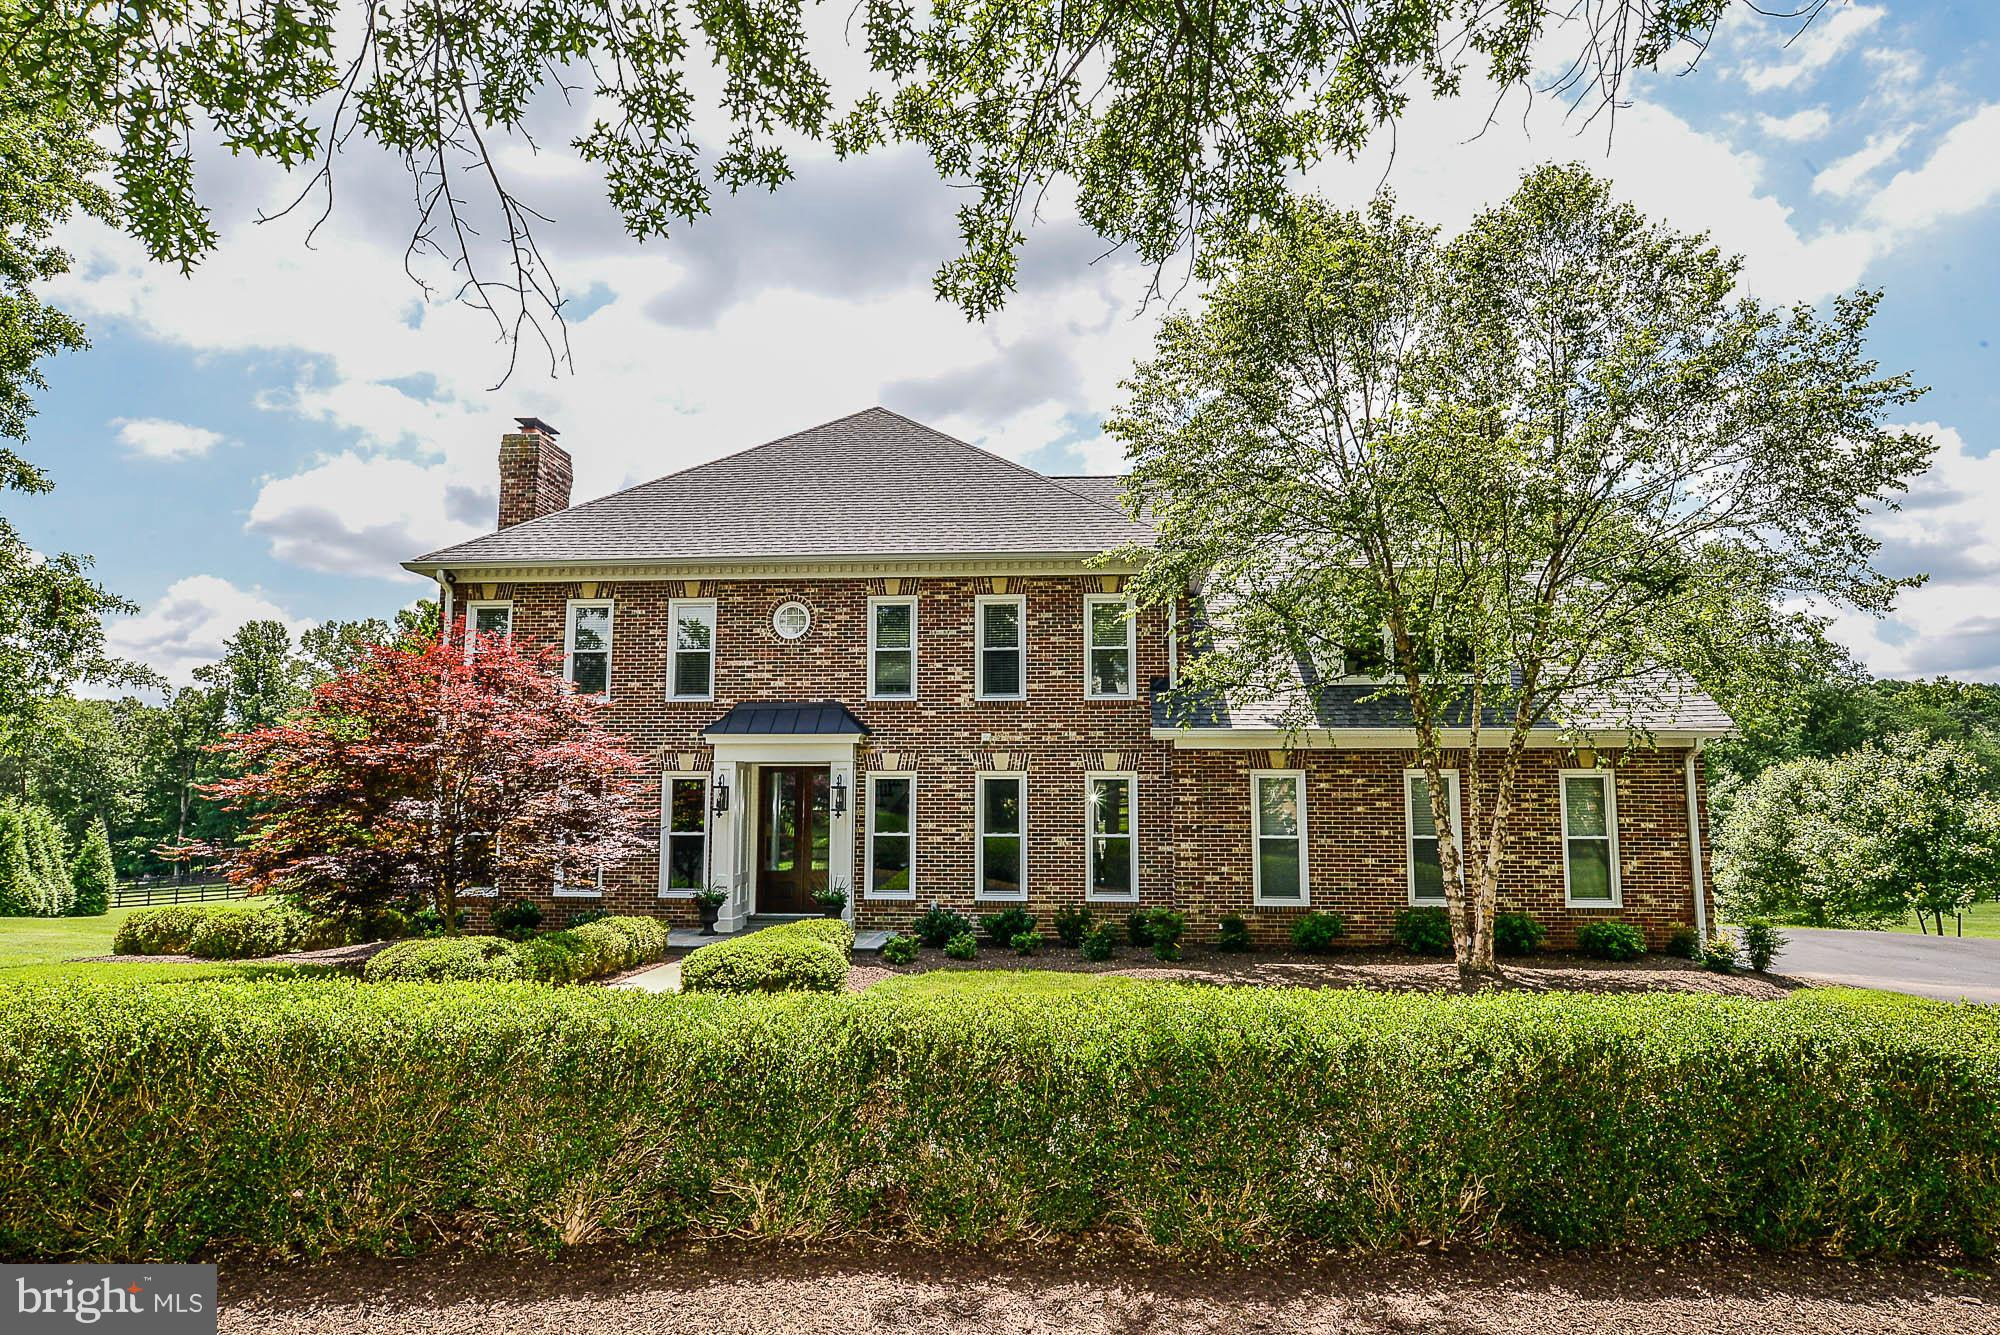 STUNNING top-to-bottom renovation (over $900k in past 2 years), 5 BR home on 5 acres. Open floor plan, gleaming hardwoods, all new light fixtures. Kitchen features paneled Thermador and Bosch appliances, custom cabinetry, quartz countertops. MBR w/ enormous walk-in his/hers closet and spa-like bath. FABULOUS outdoor space (see pics for details). New roof, windows, doors - no detail overlooked.